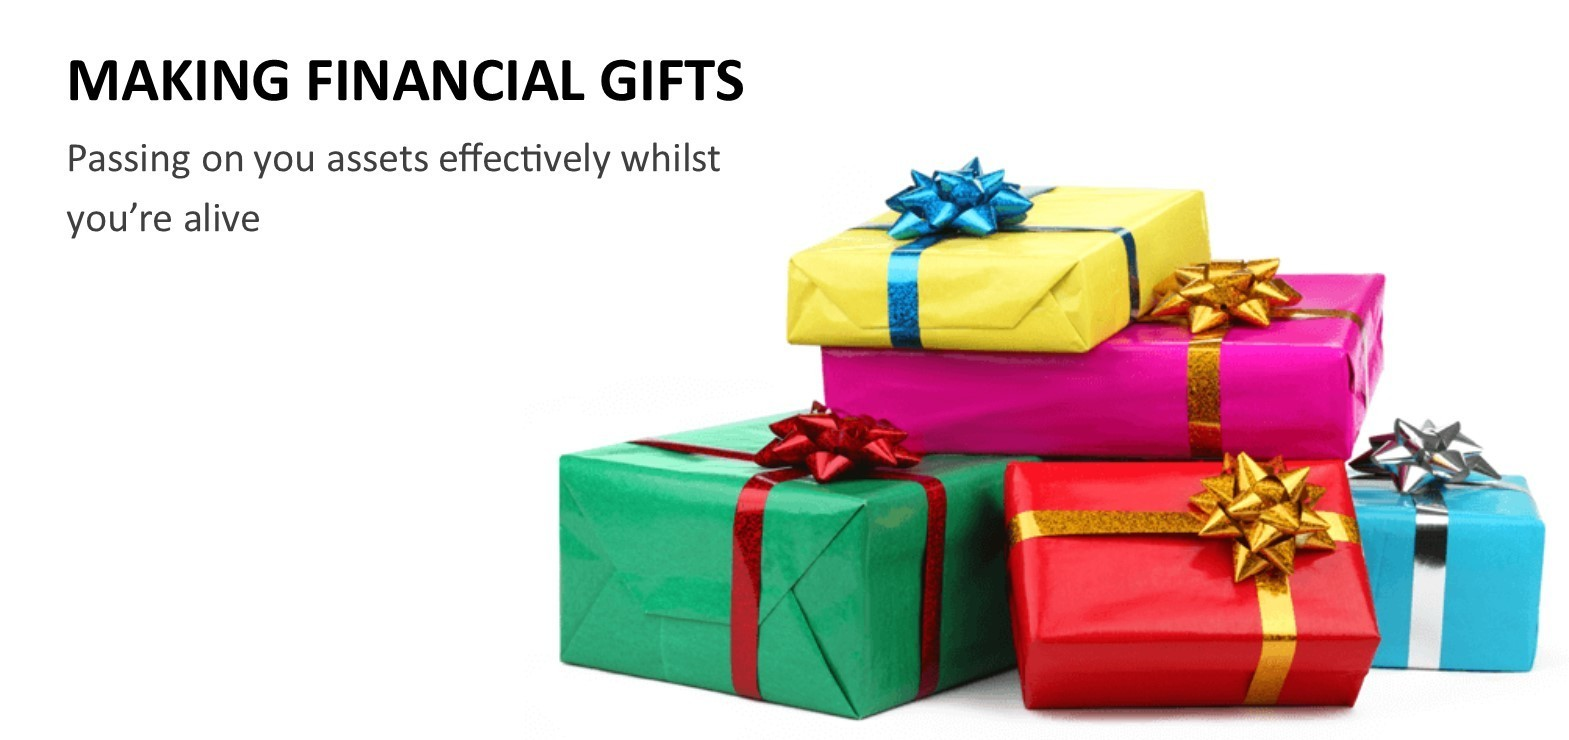 Making Financial Gifts - Passing on your assets effectively whilst you're still alive image